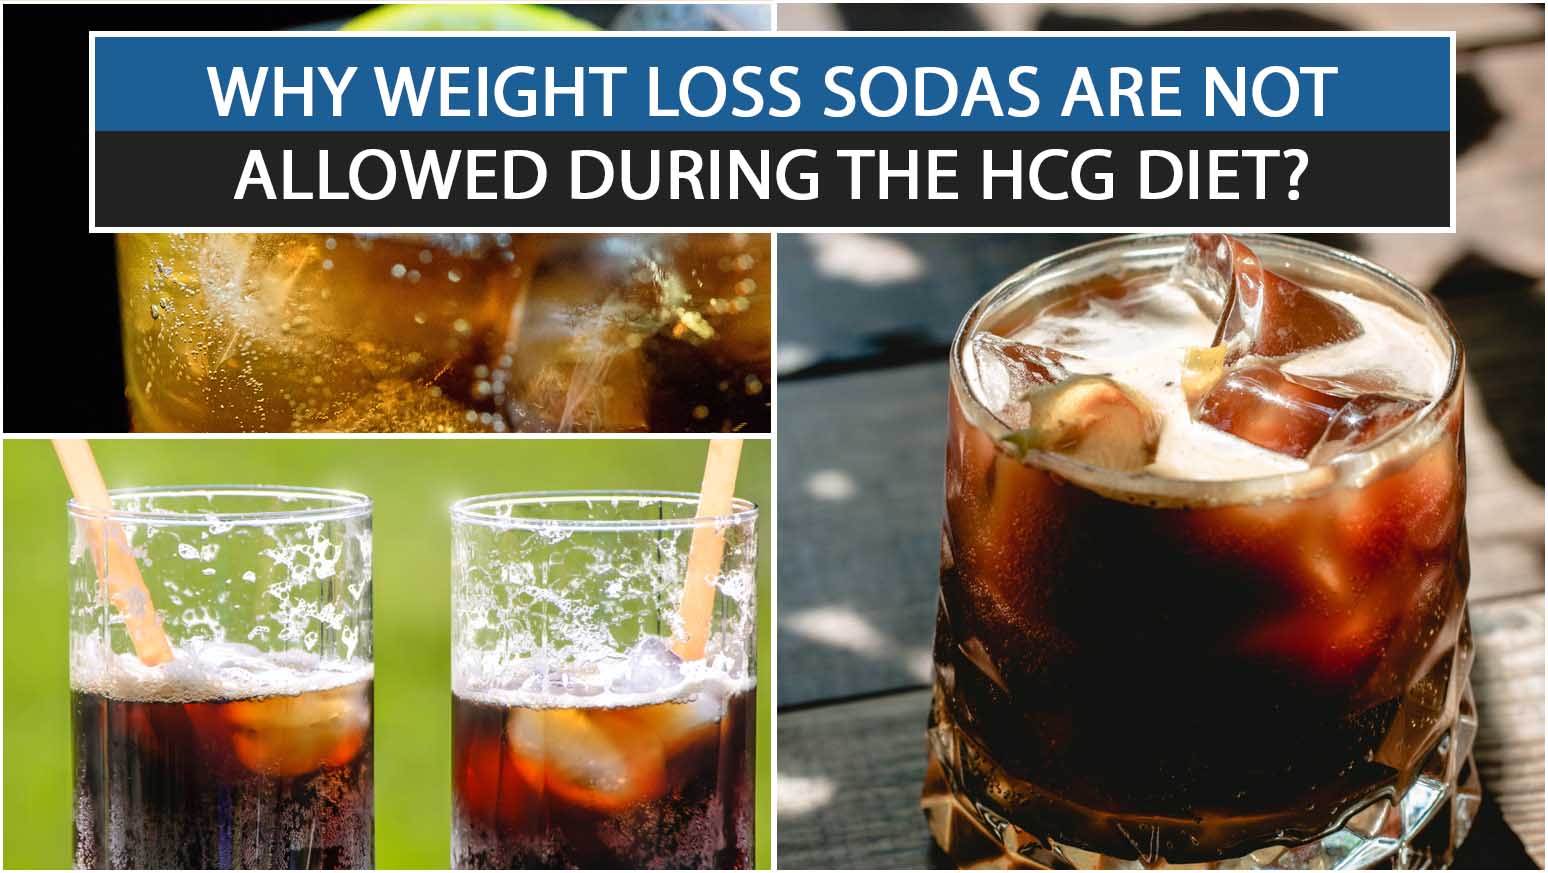 WHY WEIGHT LOSS SODAS ARE NOT ALLOWED DURING THE HCG DIET?